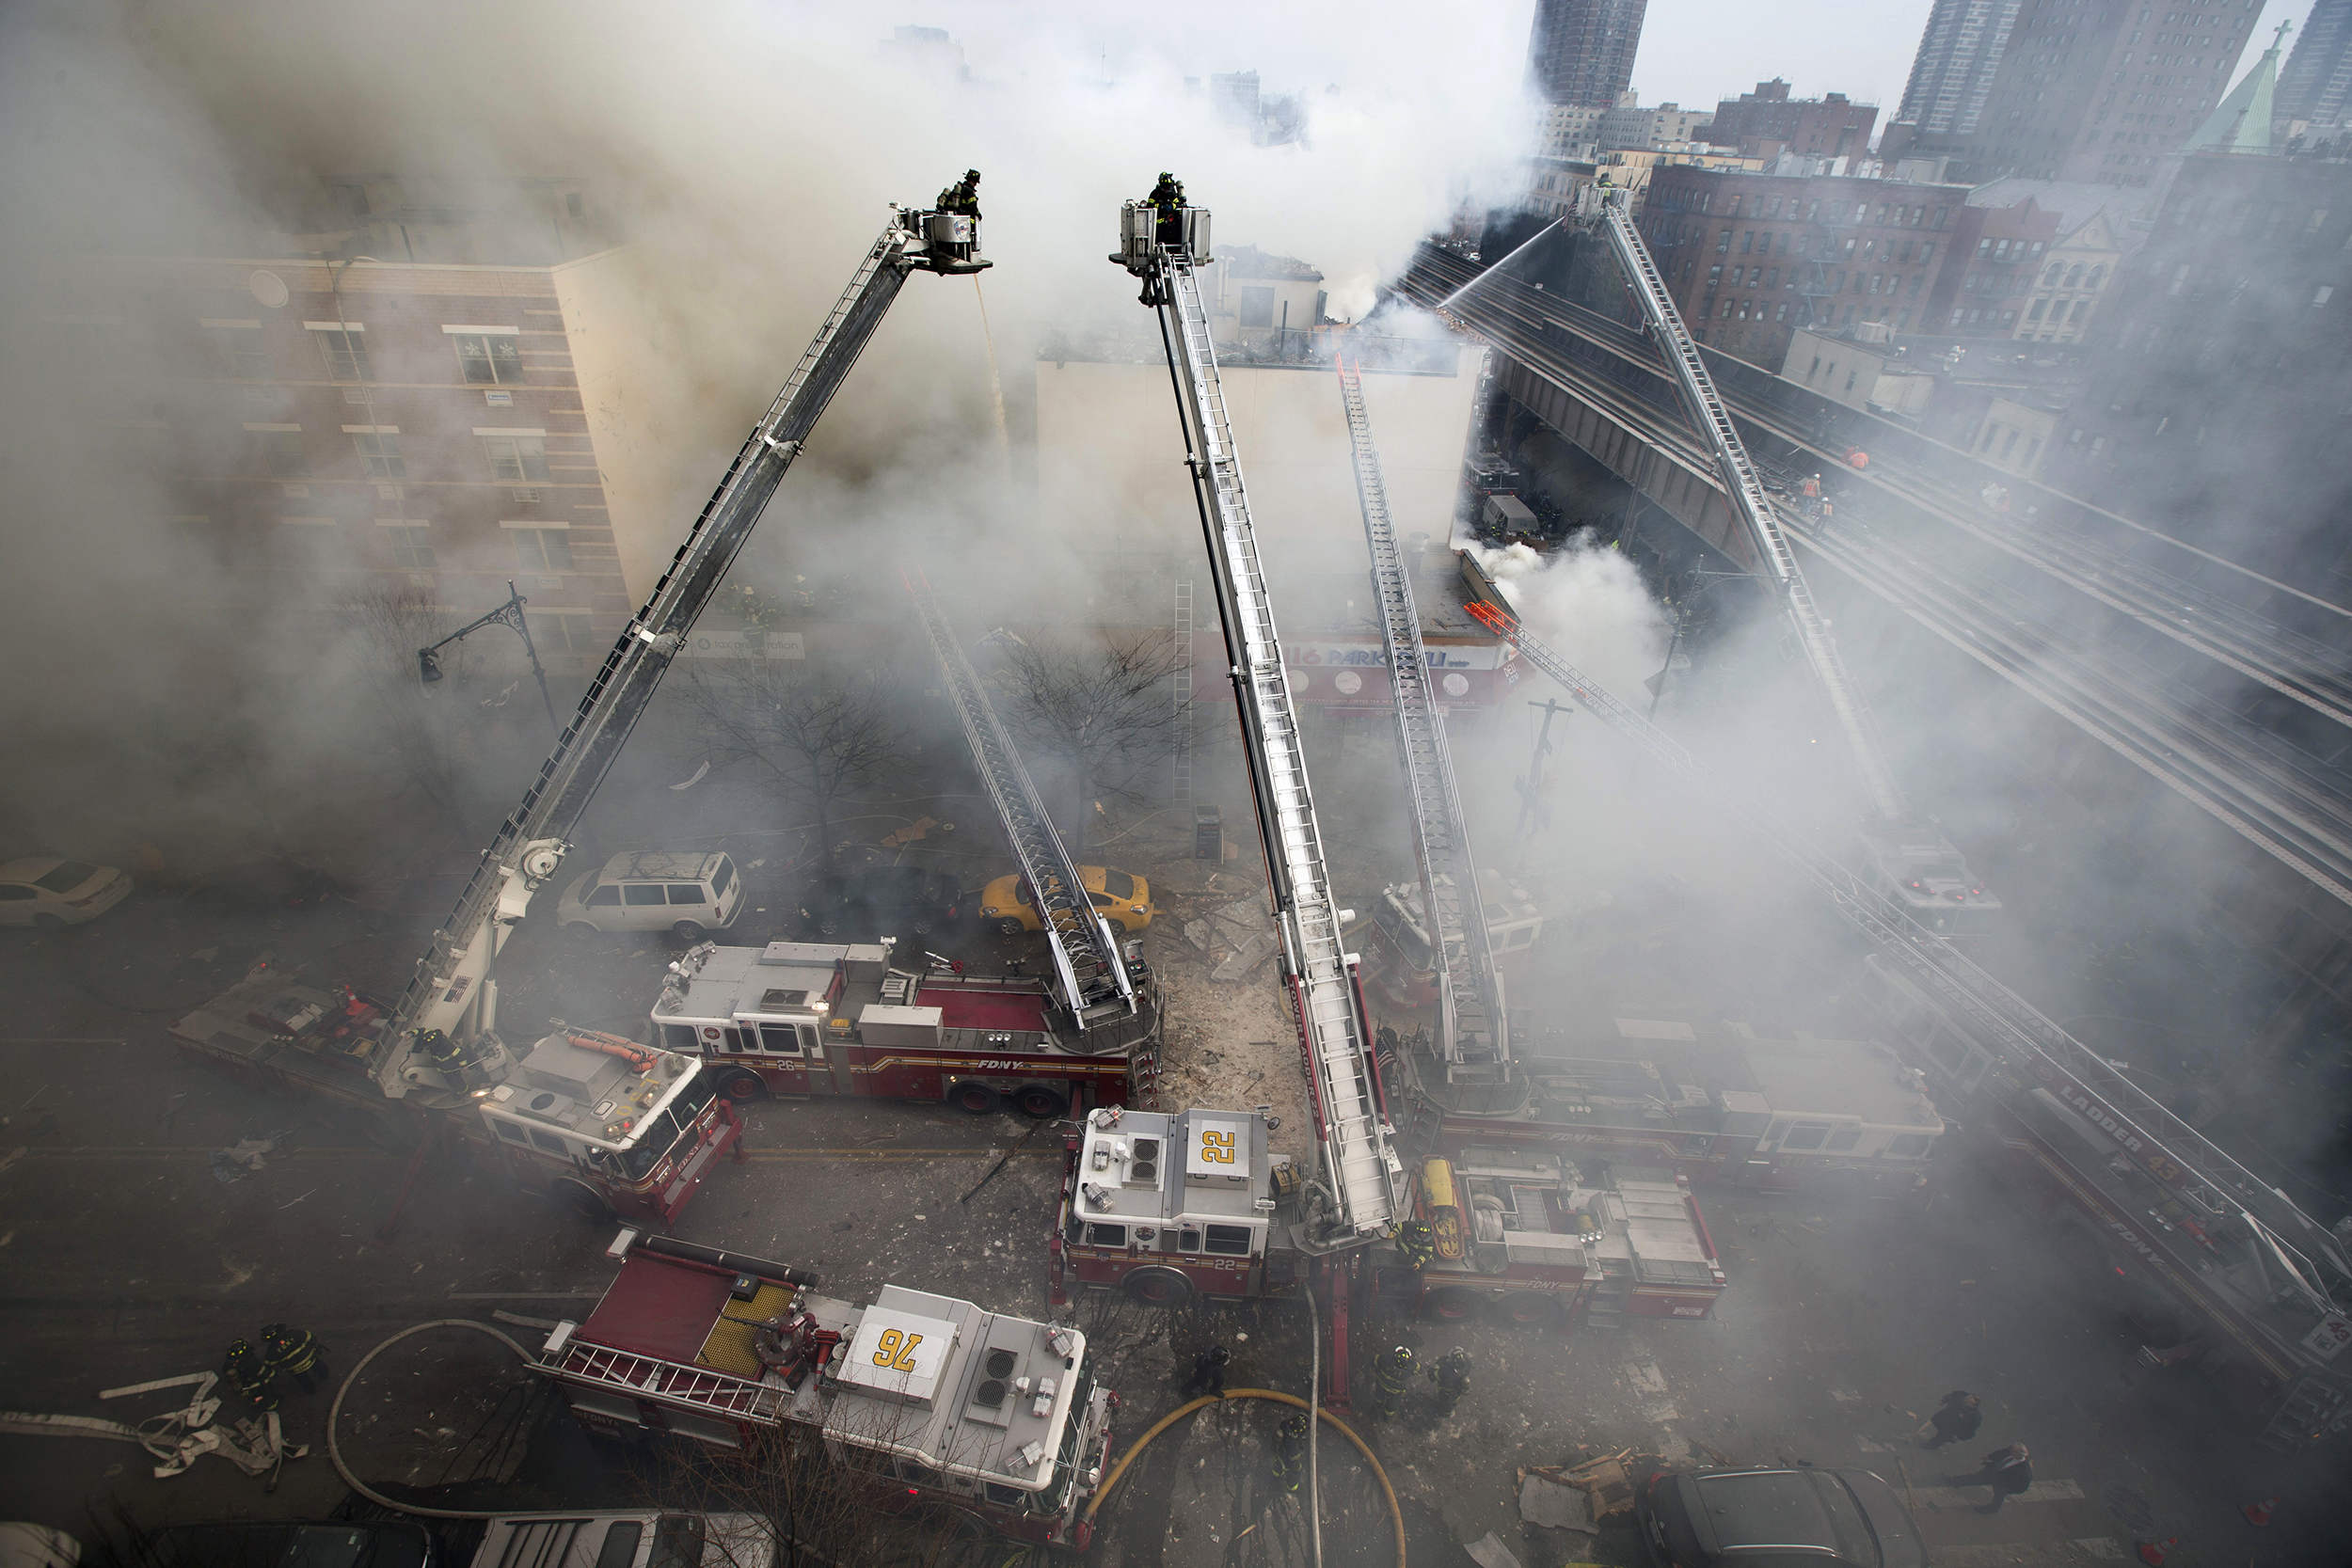 Improper Welding, Old Sewer Caused Deadly NYC Explosion